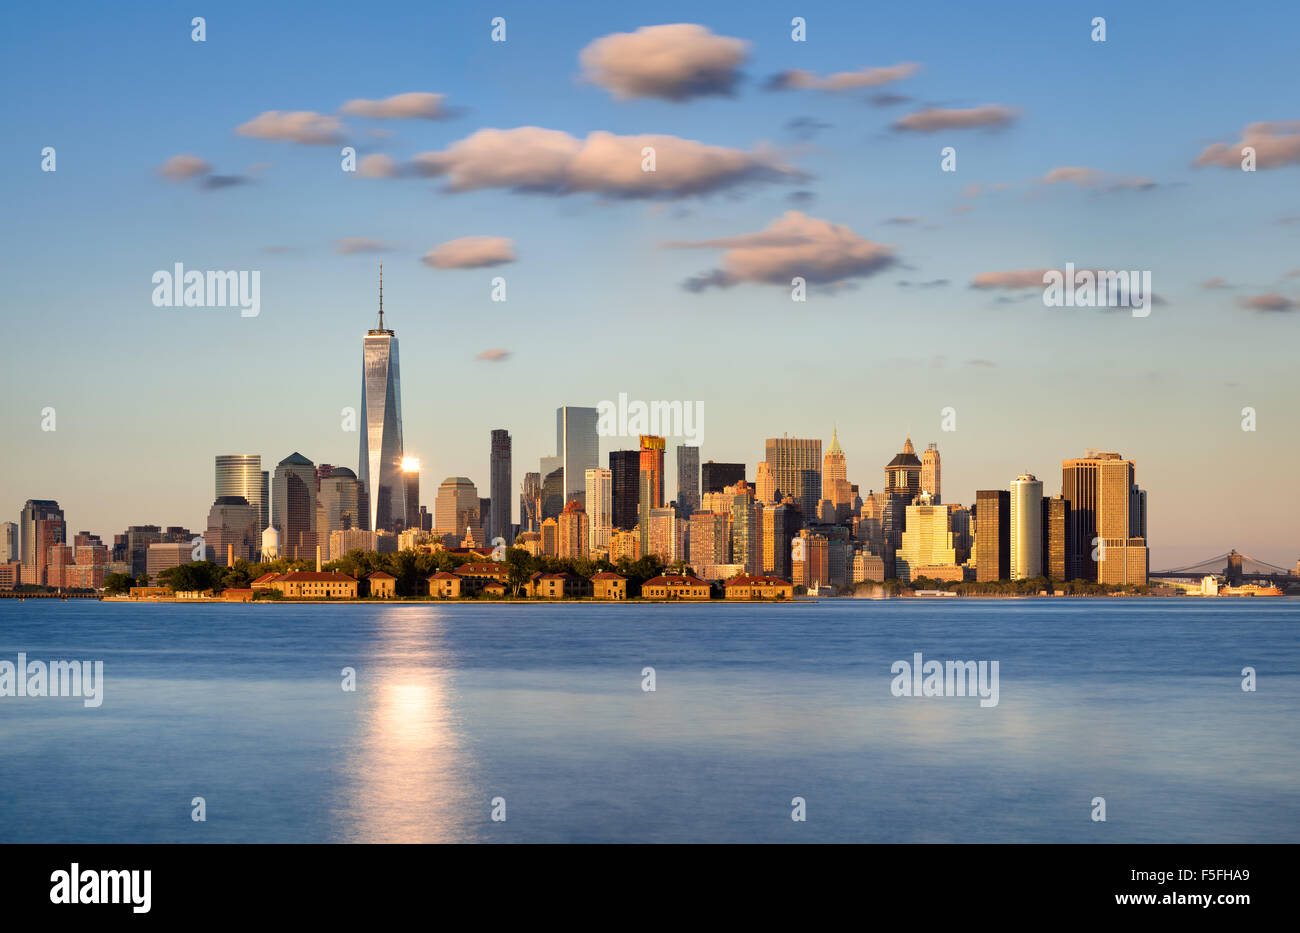 Skyline di New York City, la parte inferiore di Manhattan. Ellis Island compare di fronte al quartiere finanziario Immagini Stock